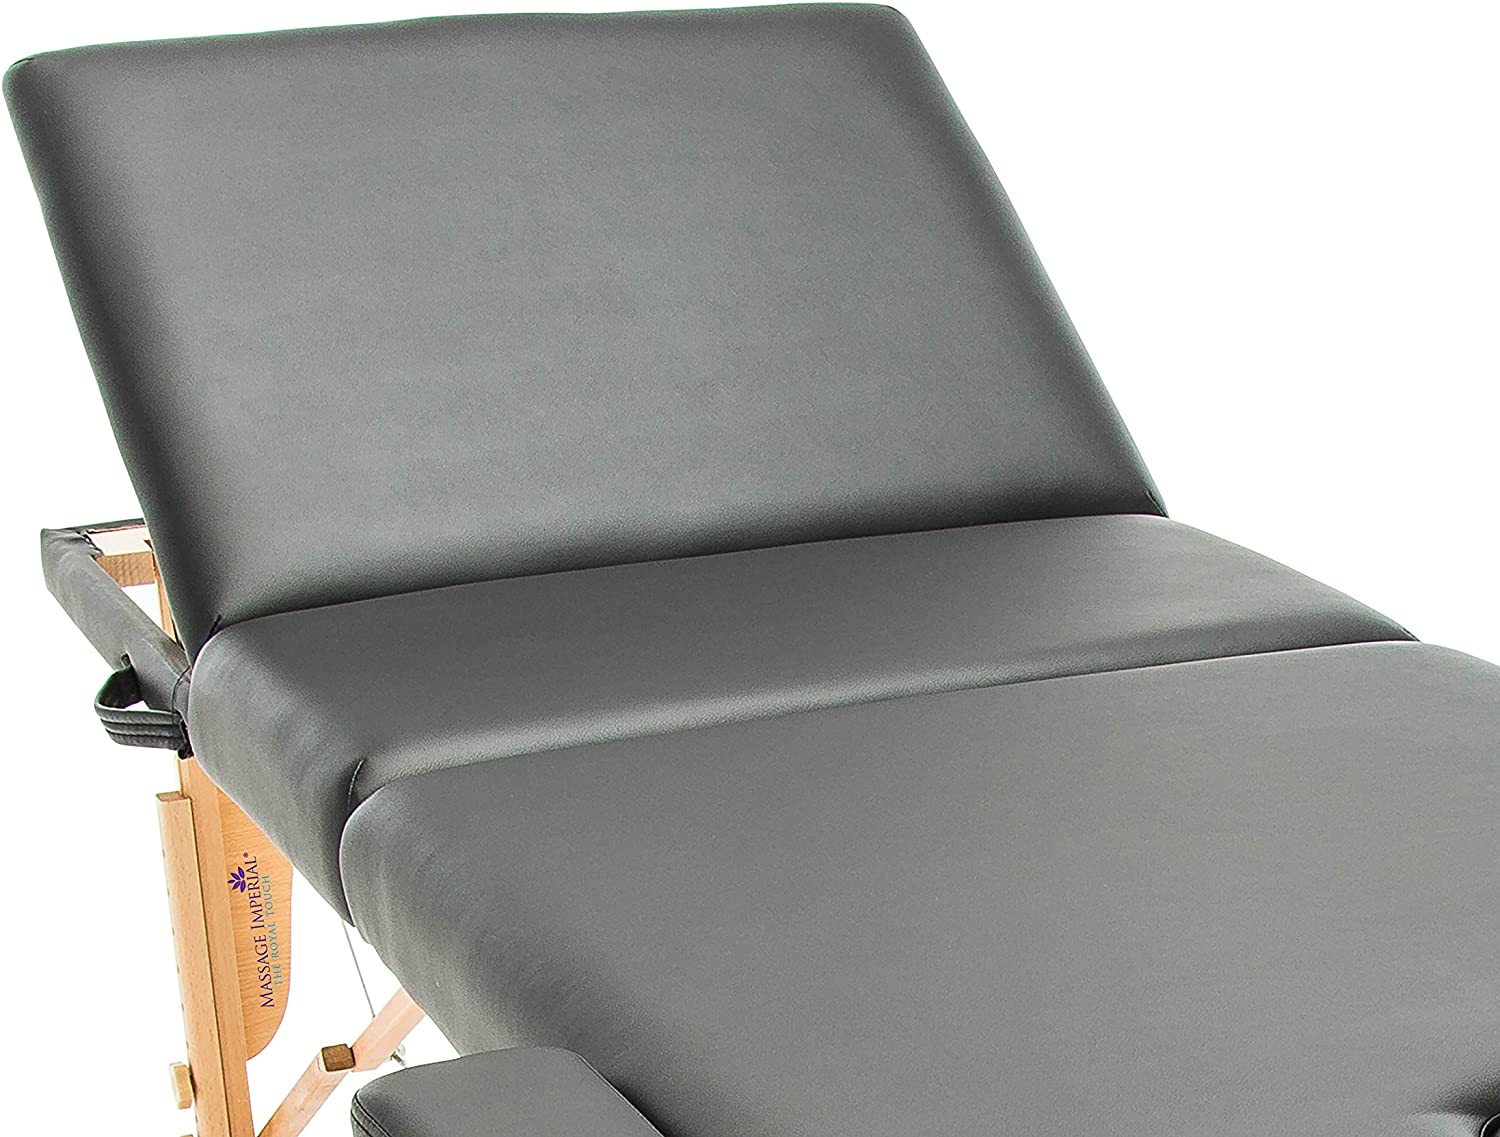 Massage Imperial Deluxe Lightweight Black 3 Section Portable